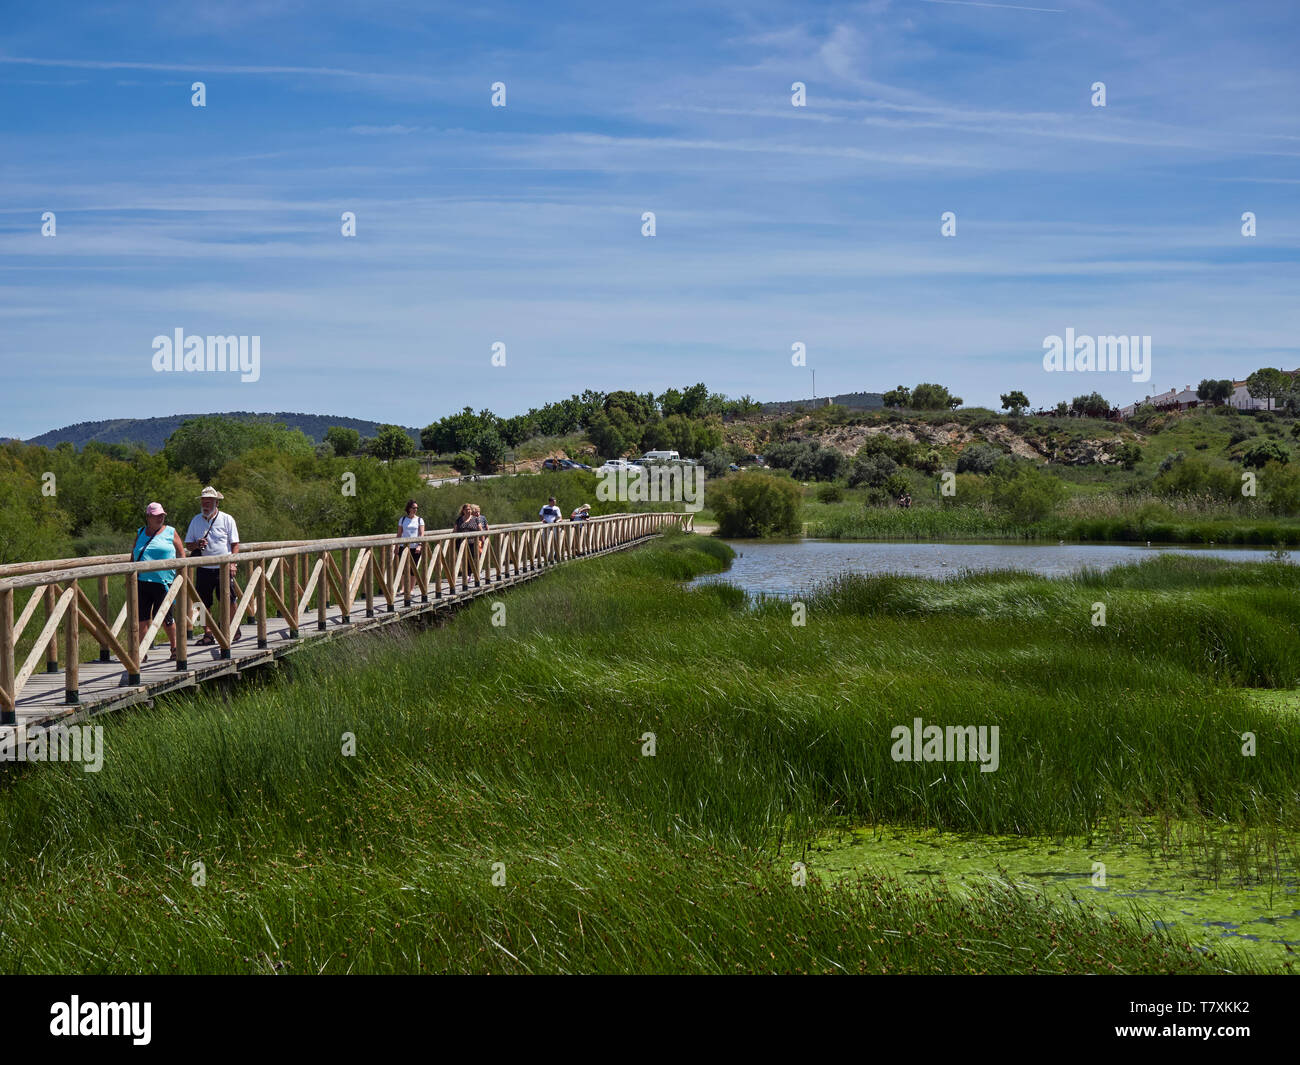 Visitors walking on the wooden Footpath across the Salt water lagoon at Fuente de Piedra Nature Reserve, watching the Wading Birds. Spain Stock Photo